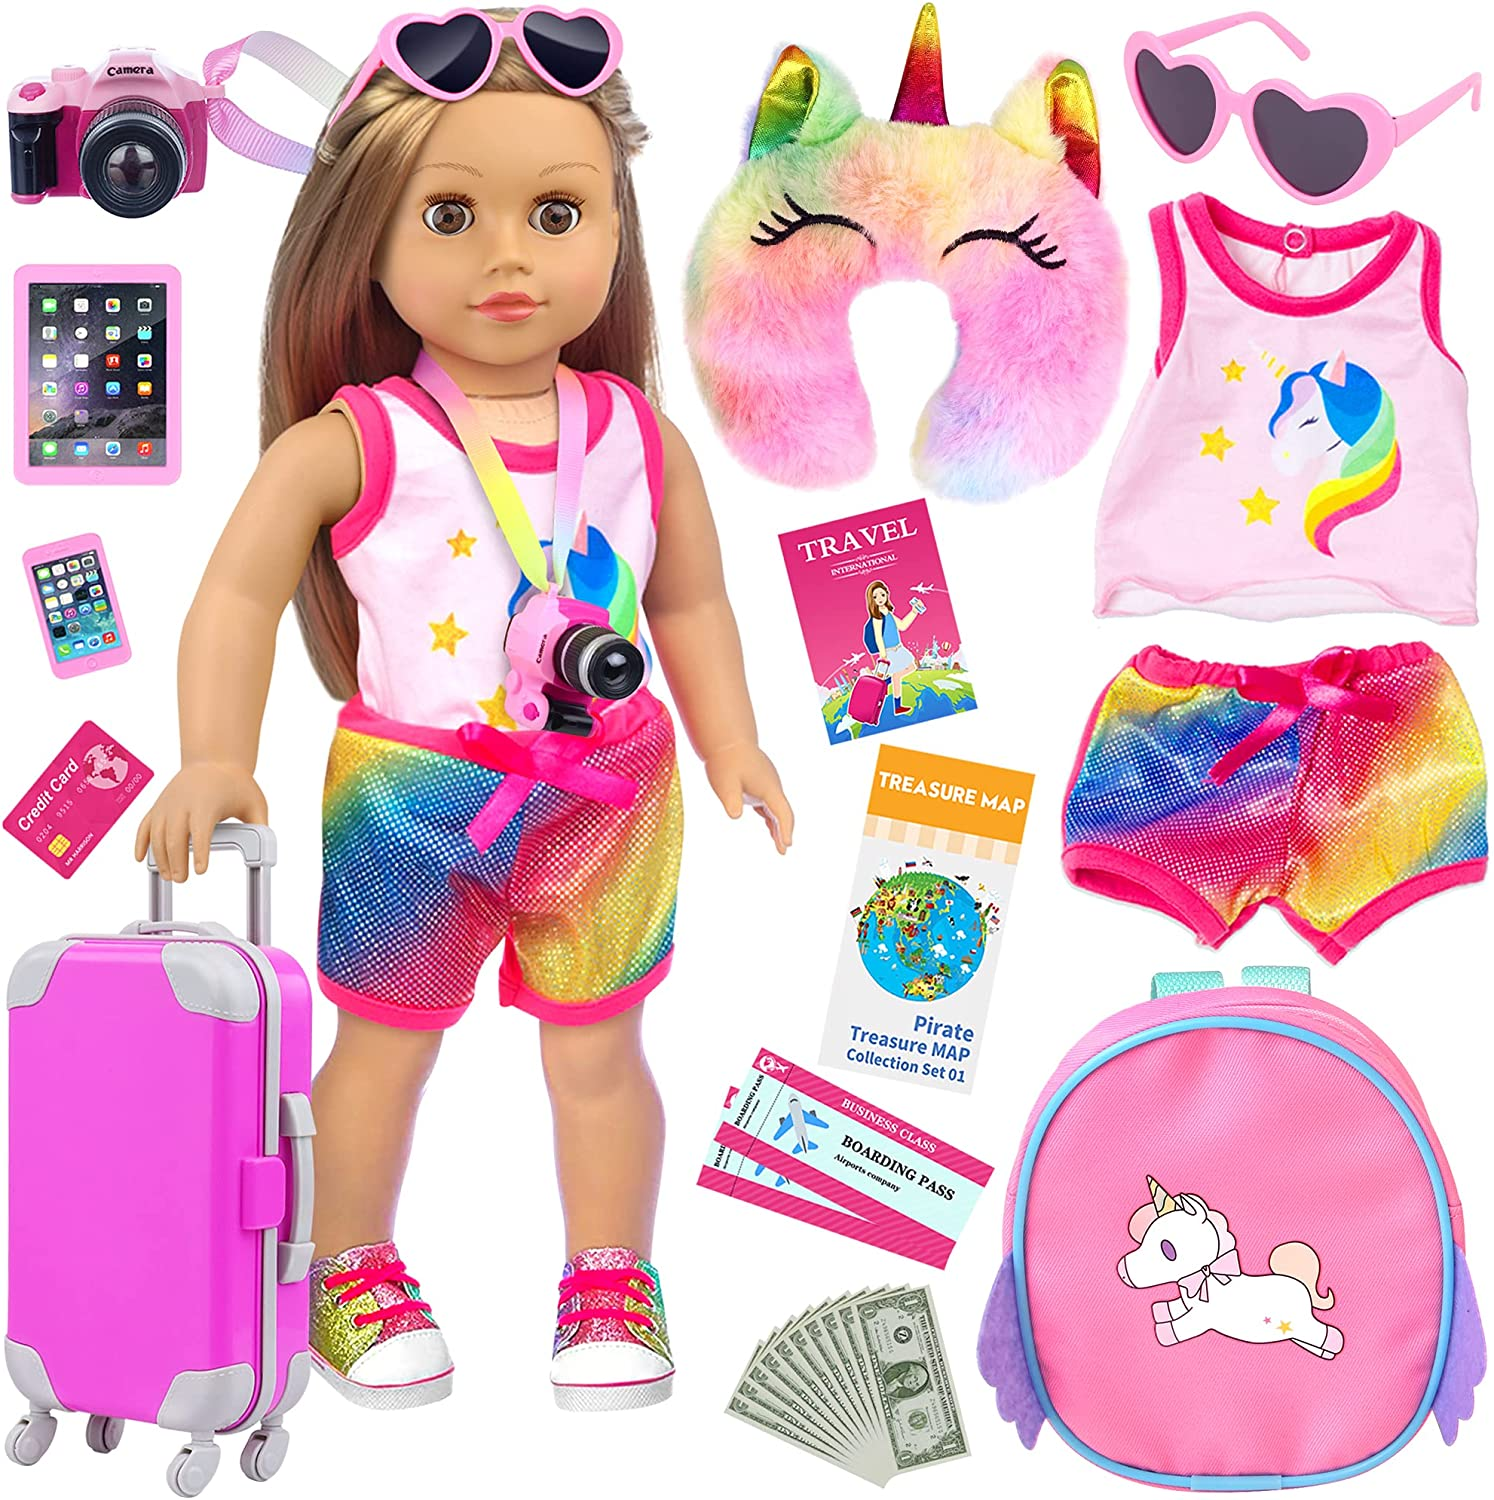 UNICORN ELEMENT 23 Pcs American 18 Inch Girl Doll Accessories Suitcase Travel Set Including Clothes Suitcase Backpack Camera Ipad Cell Phone Neck Pillow Sunglasses and Other Travel Set